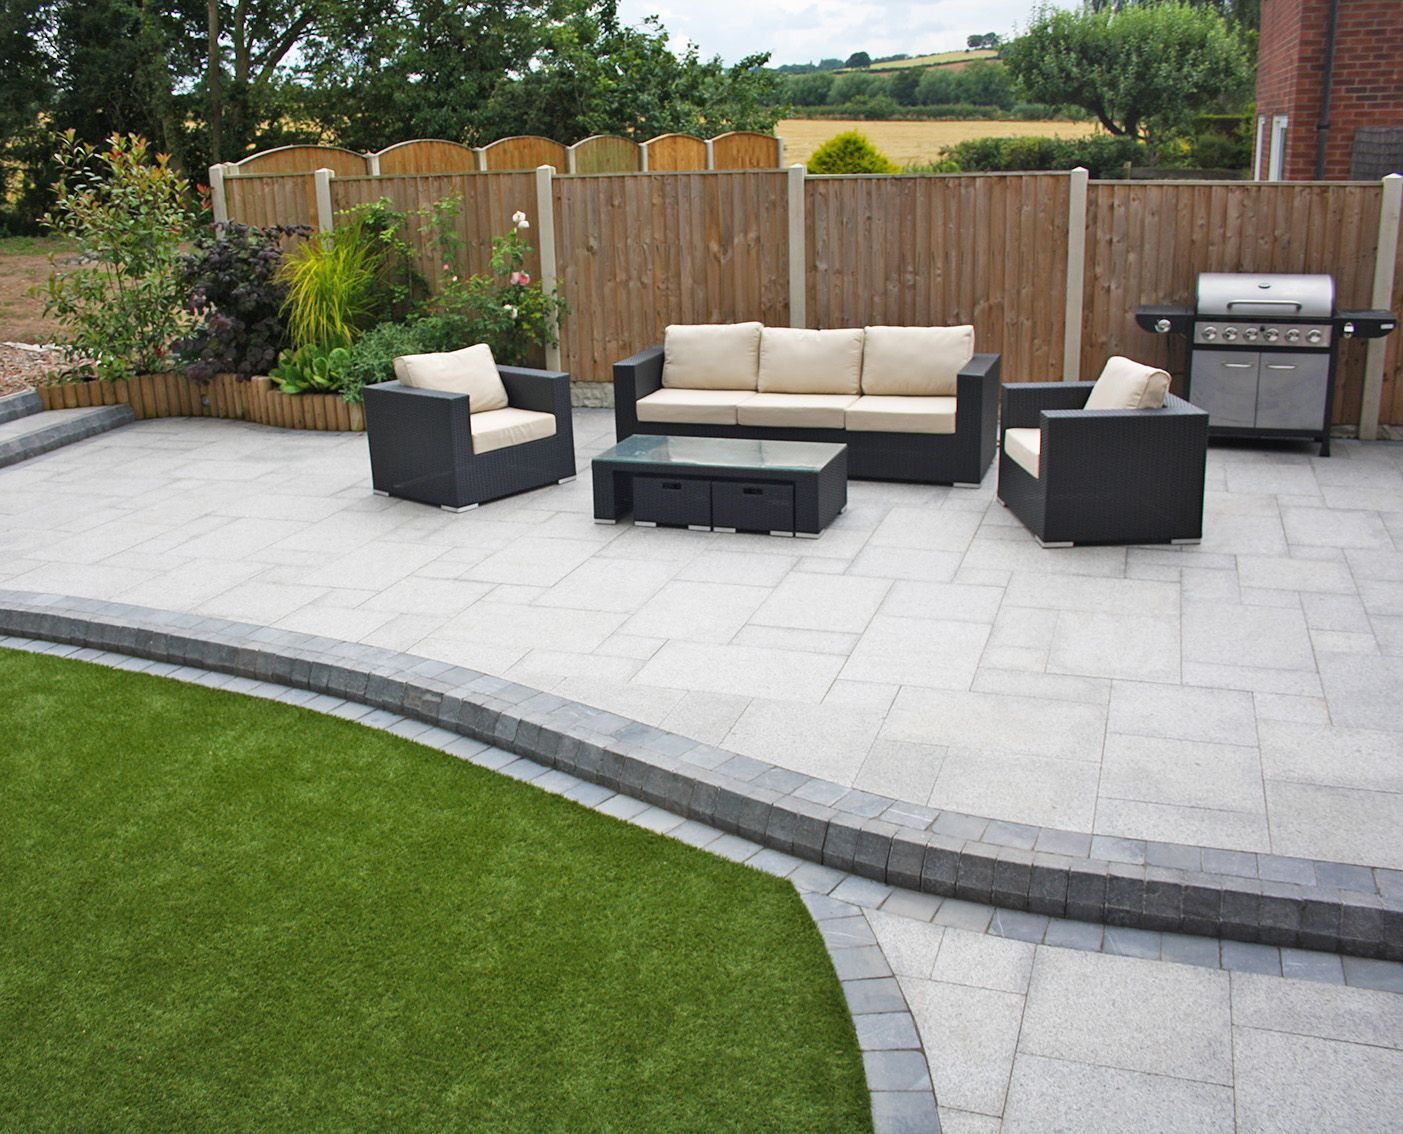 Best 25+ Modern Patio Ideas On Pinterest | Modern Patio Design, Paving Ideas  And Patio Design